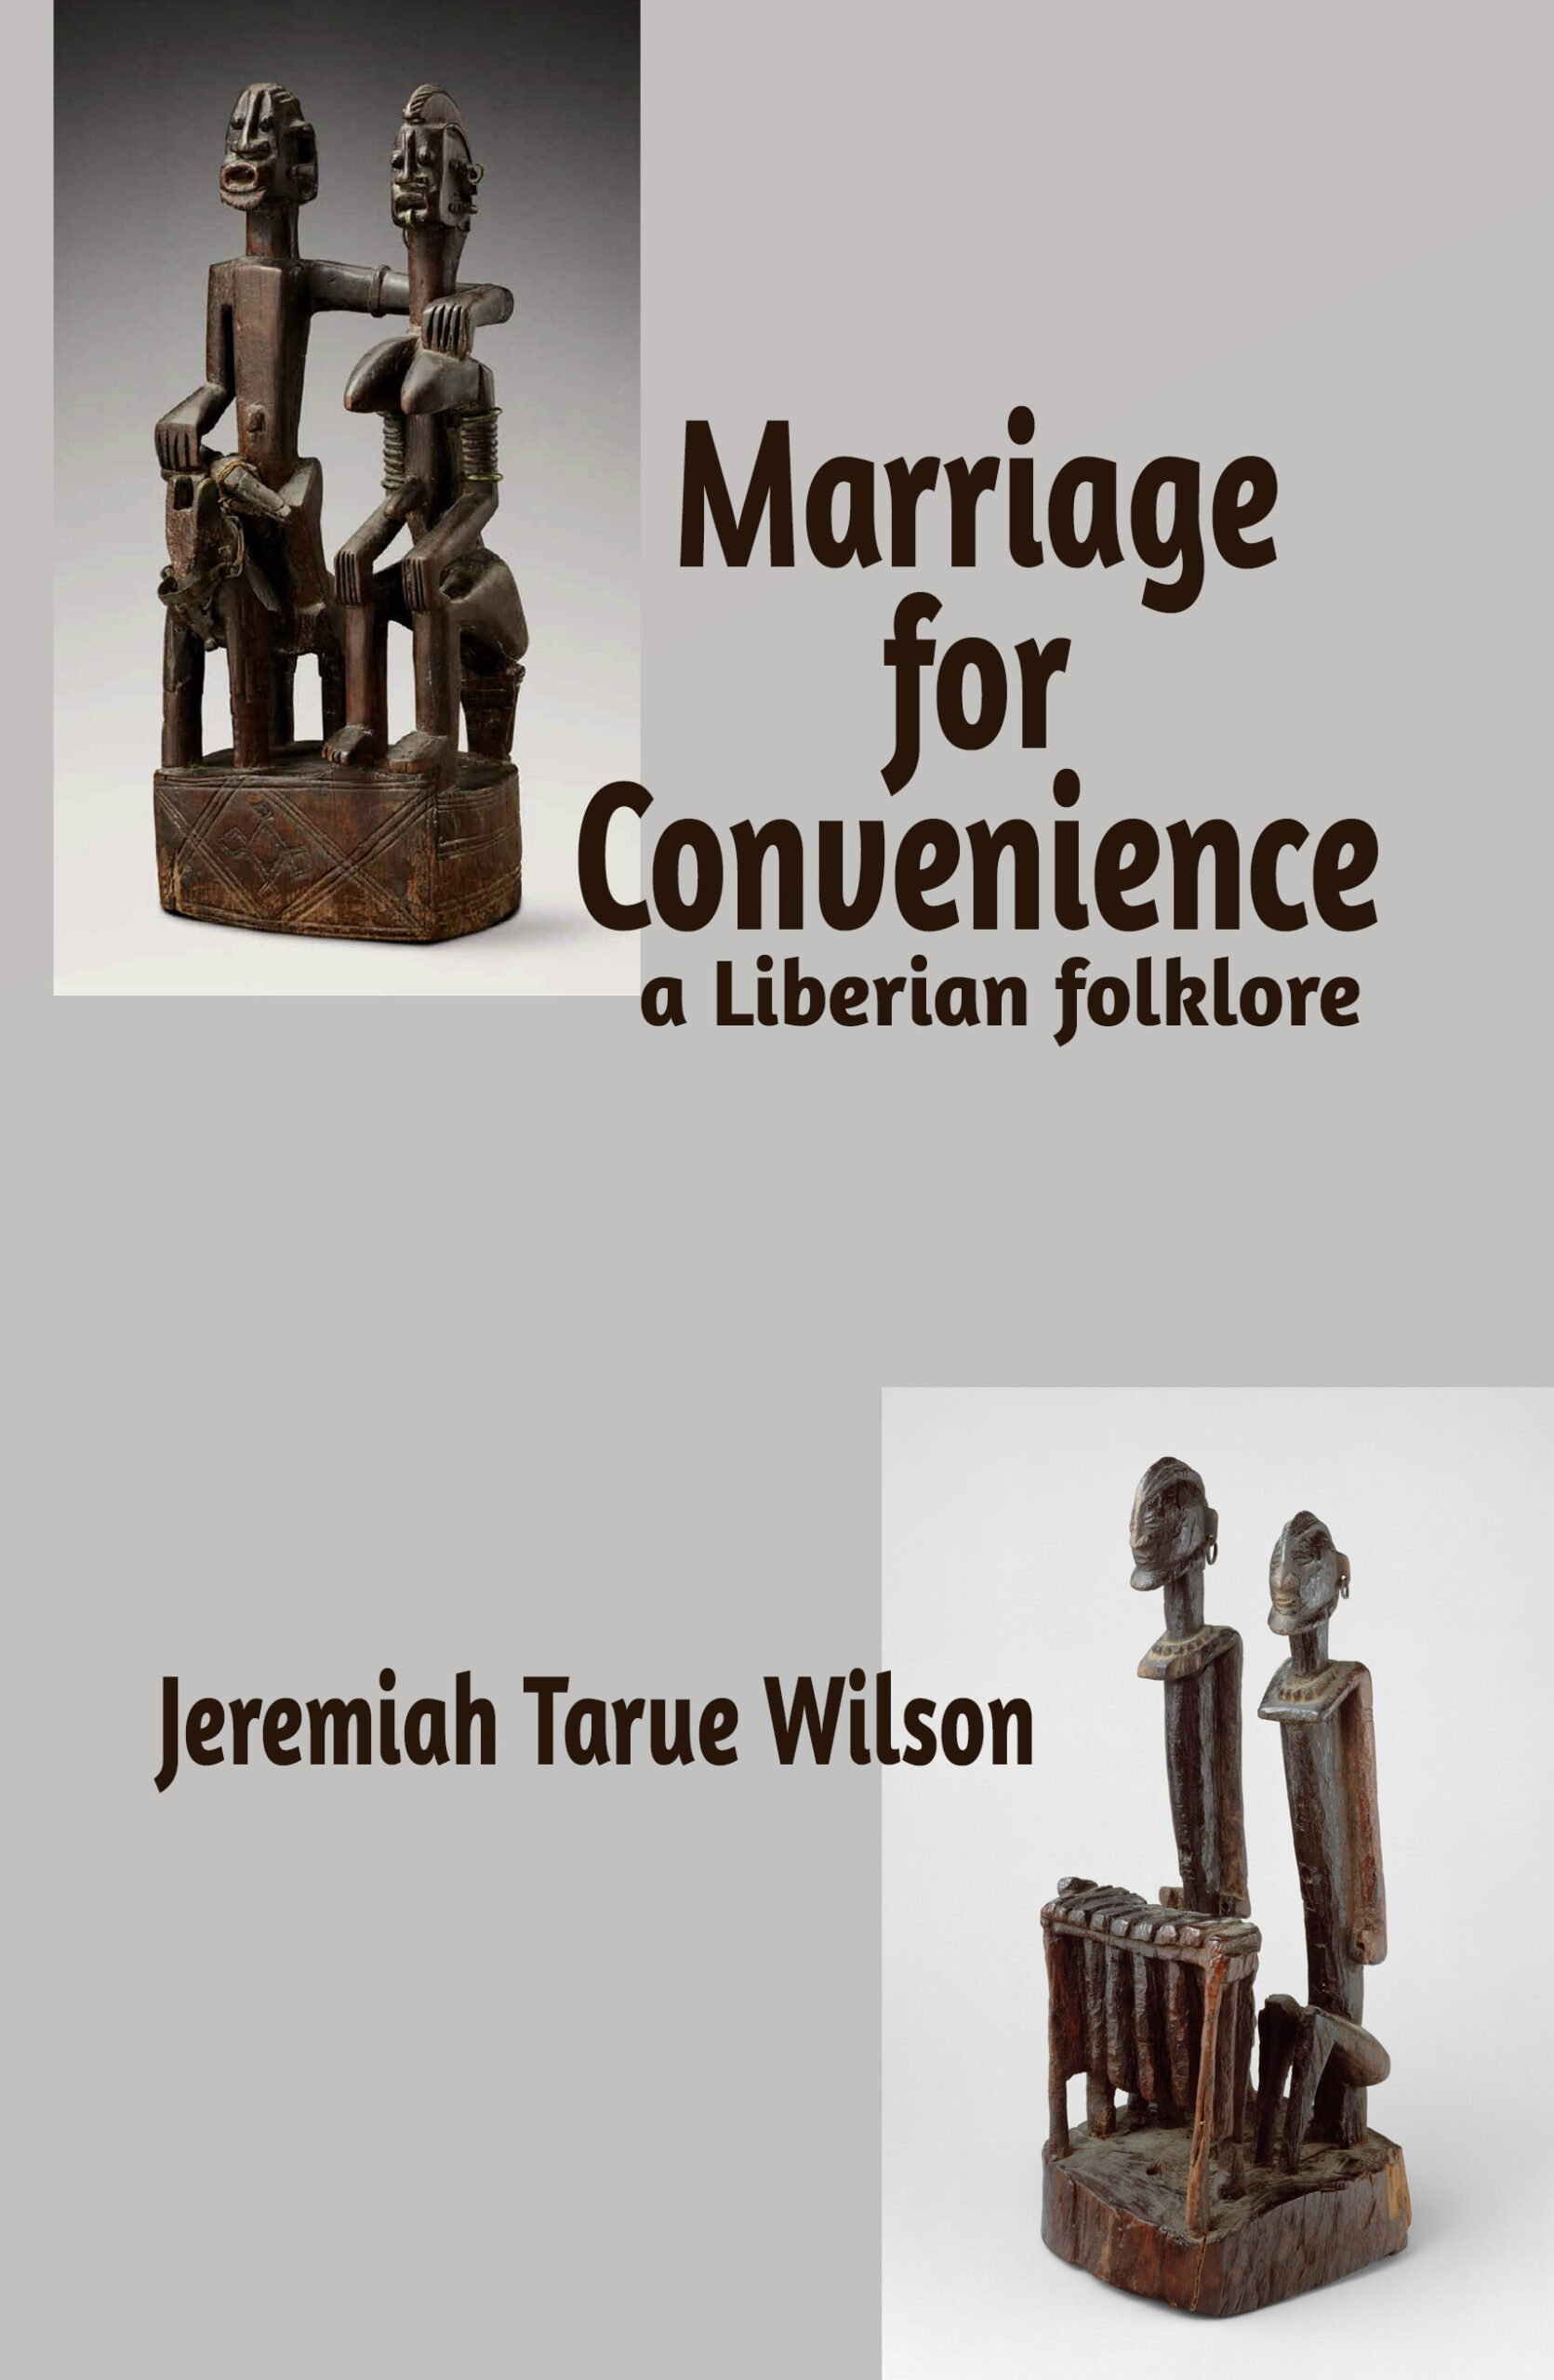 Marriage for Convenience